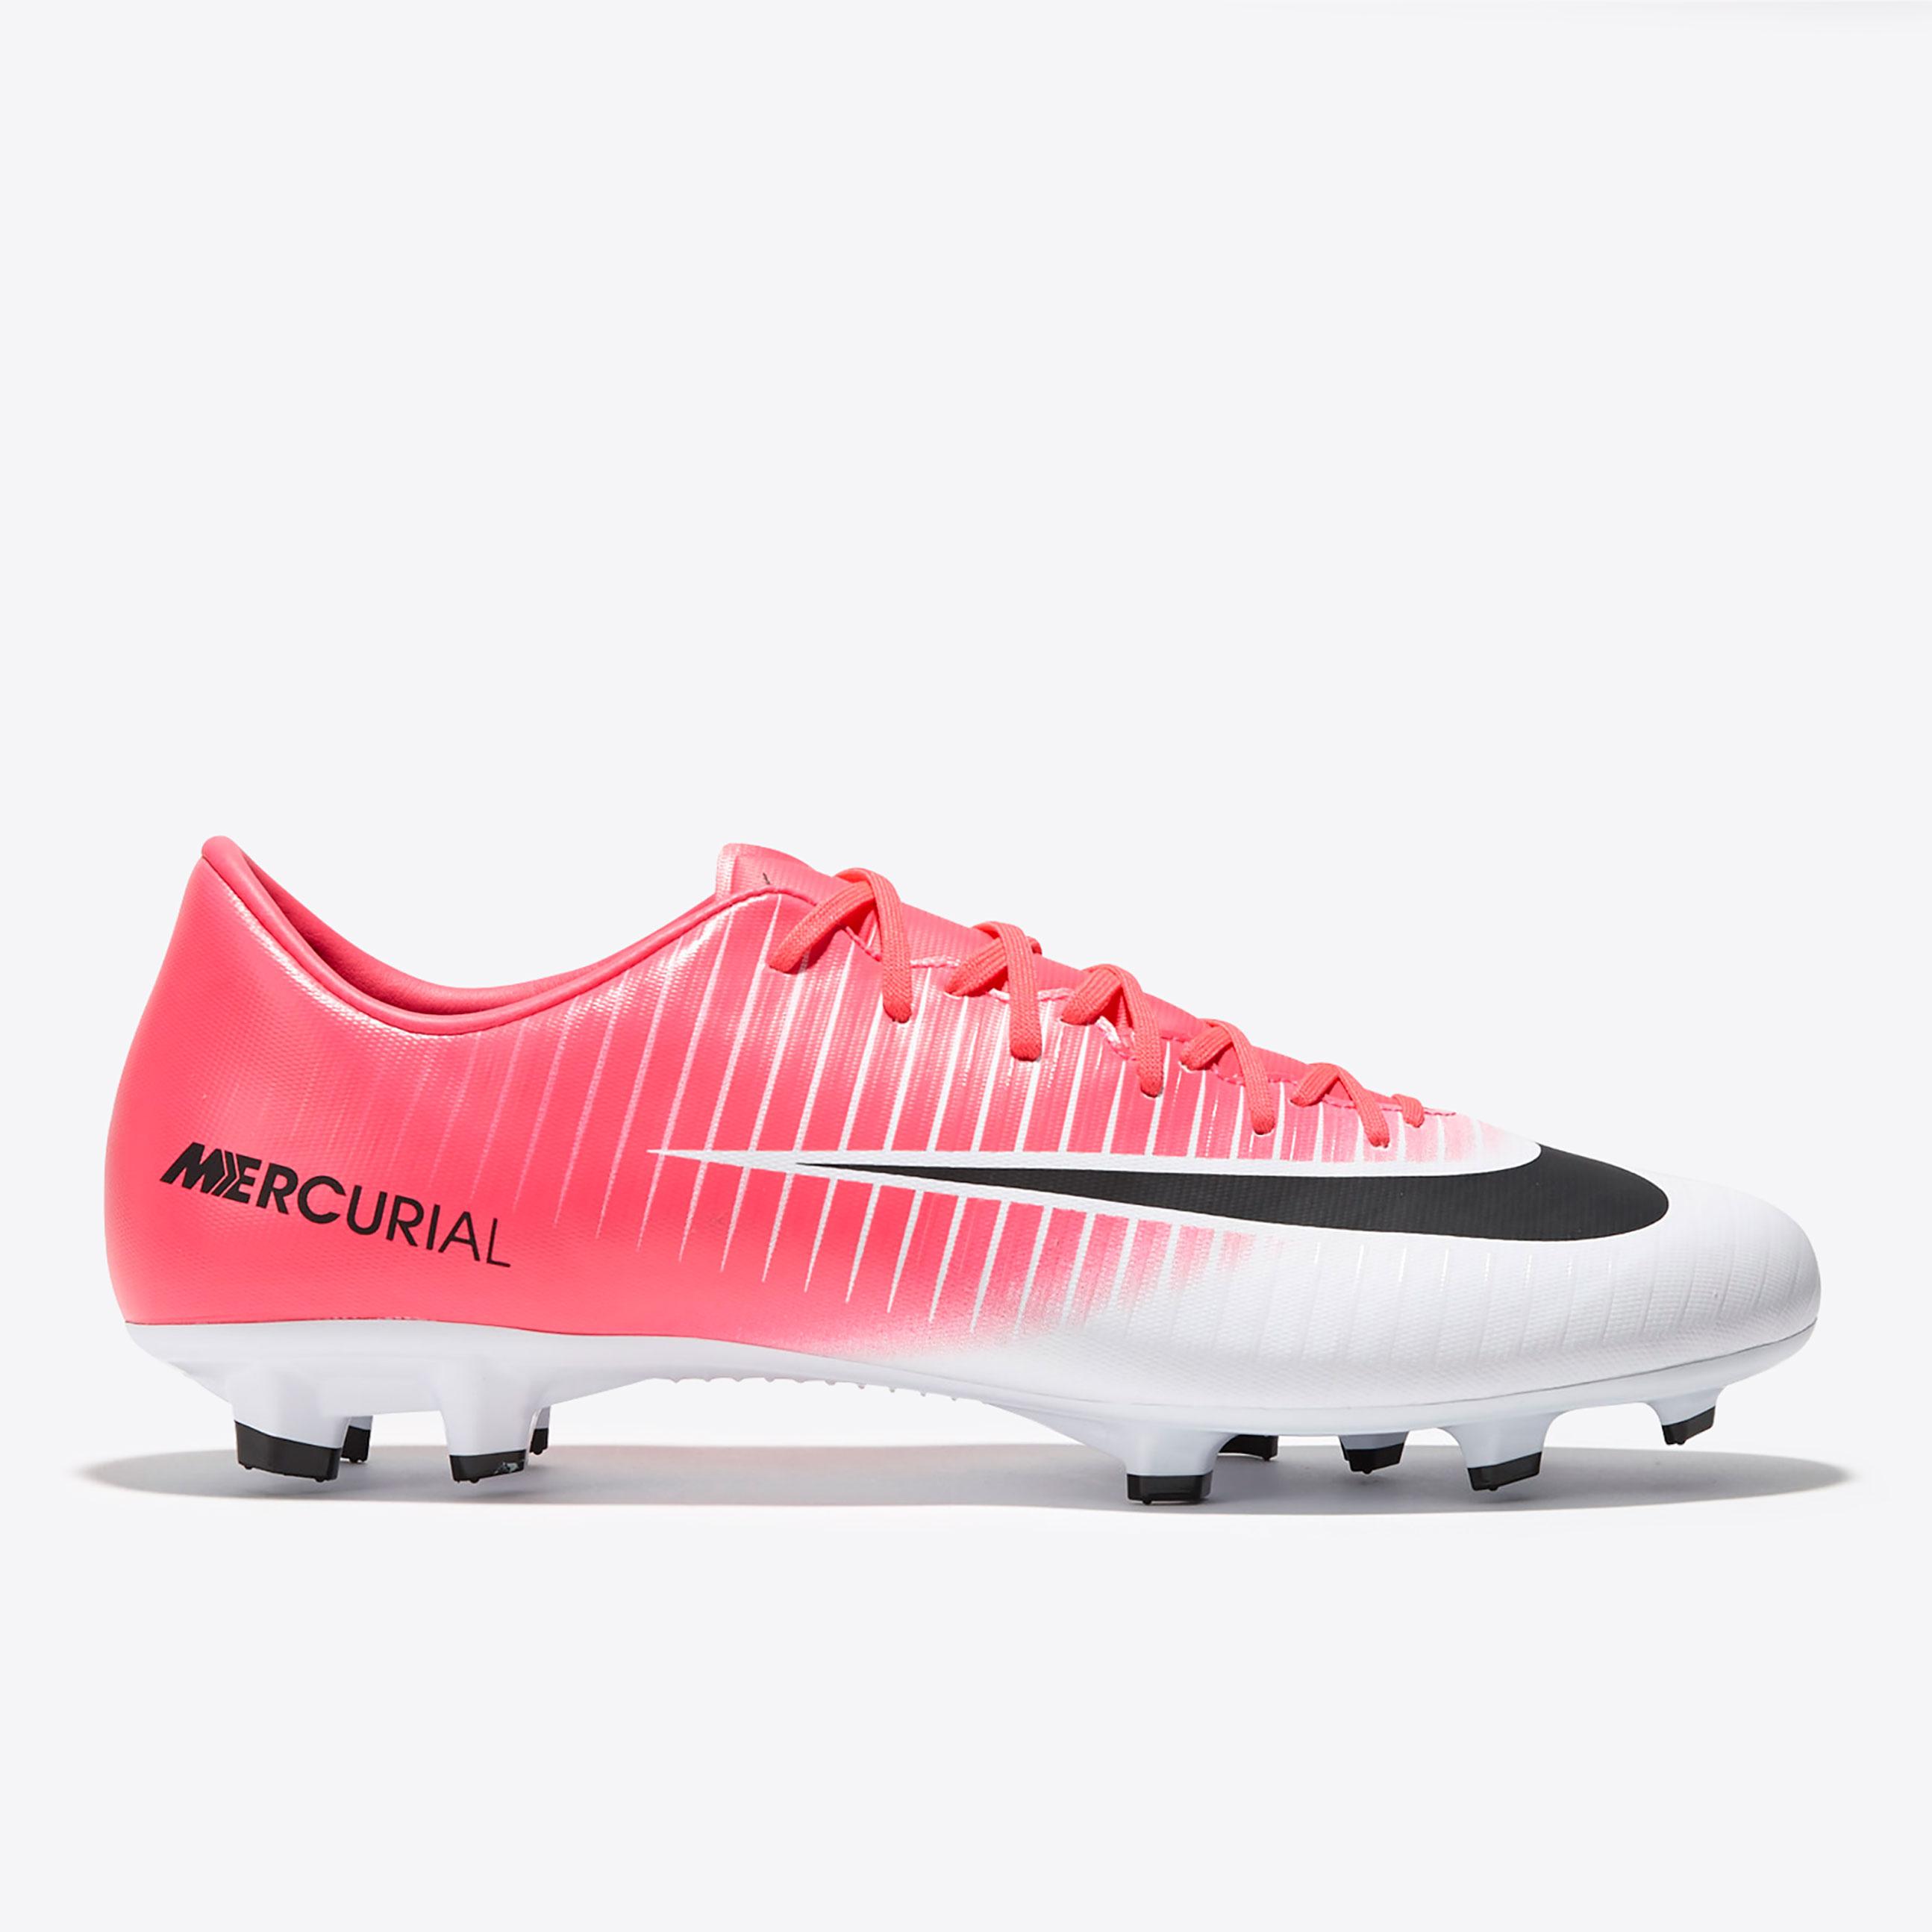 Nike Mercurial Victory VI Firm Ground Football Boots - Racer Pink/Blac